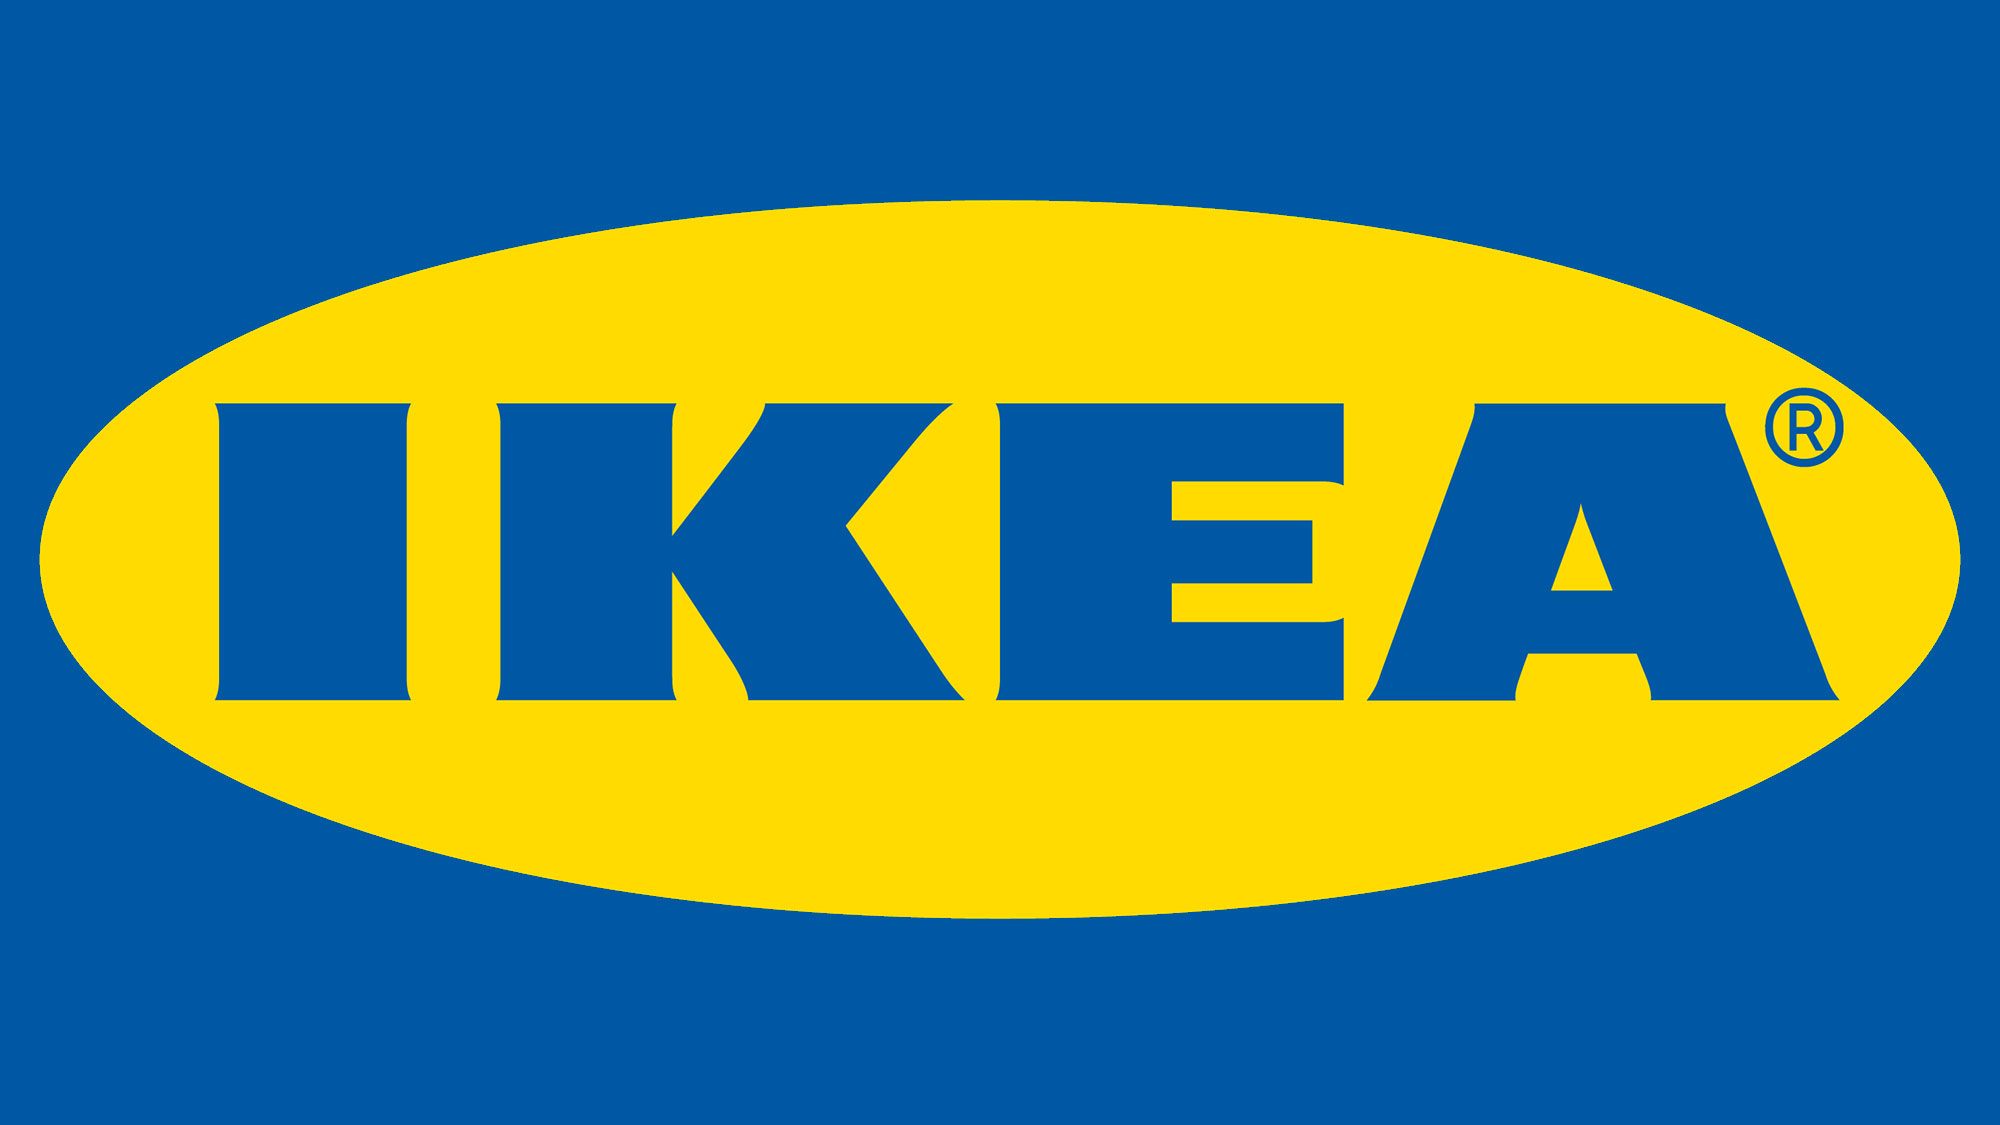 Corporate logo for IKEA